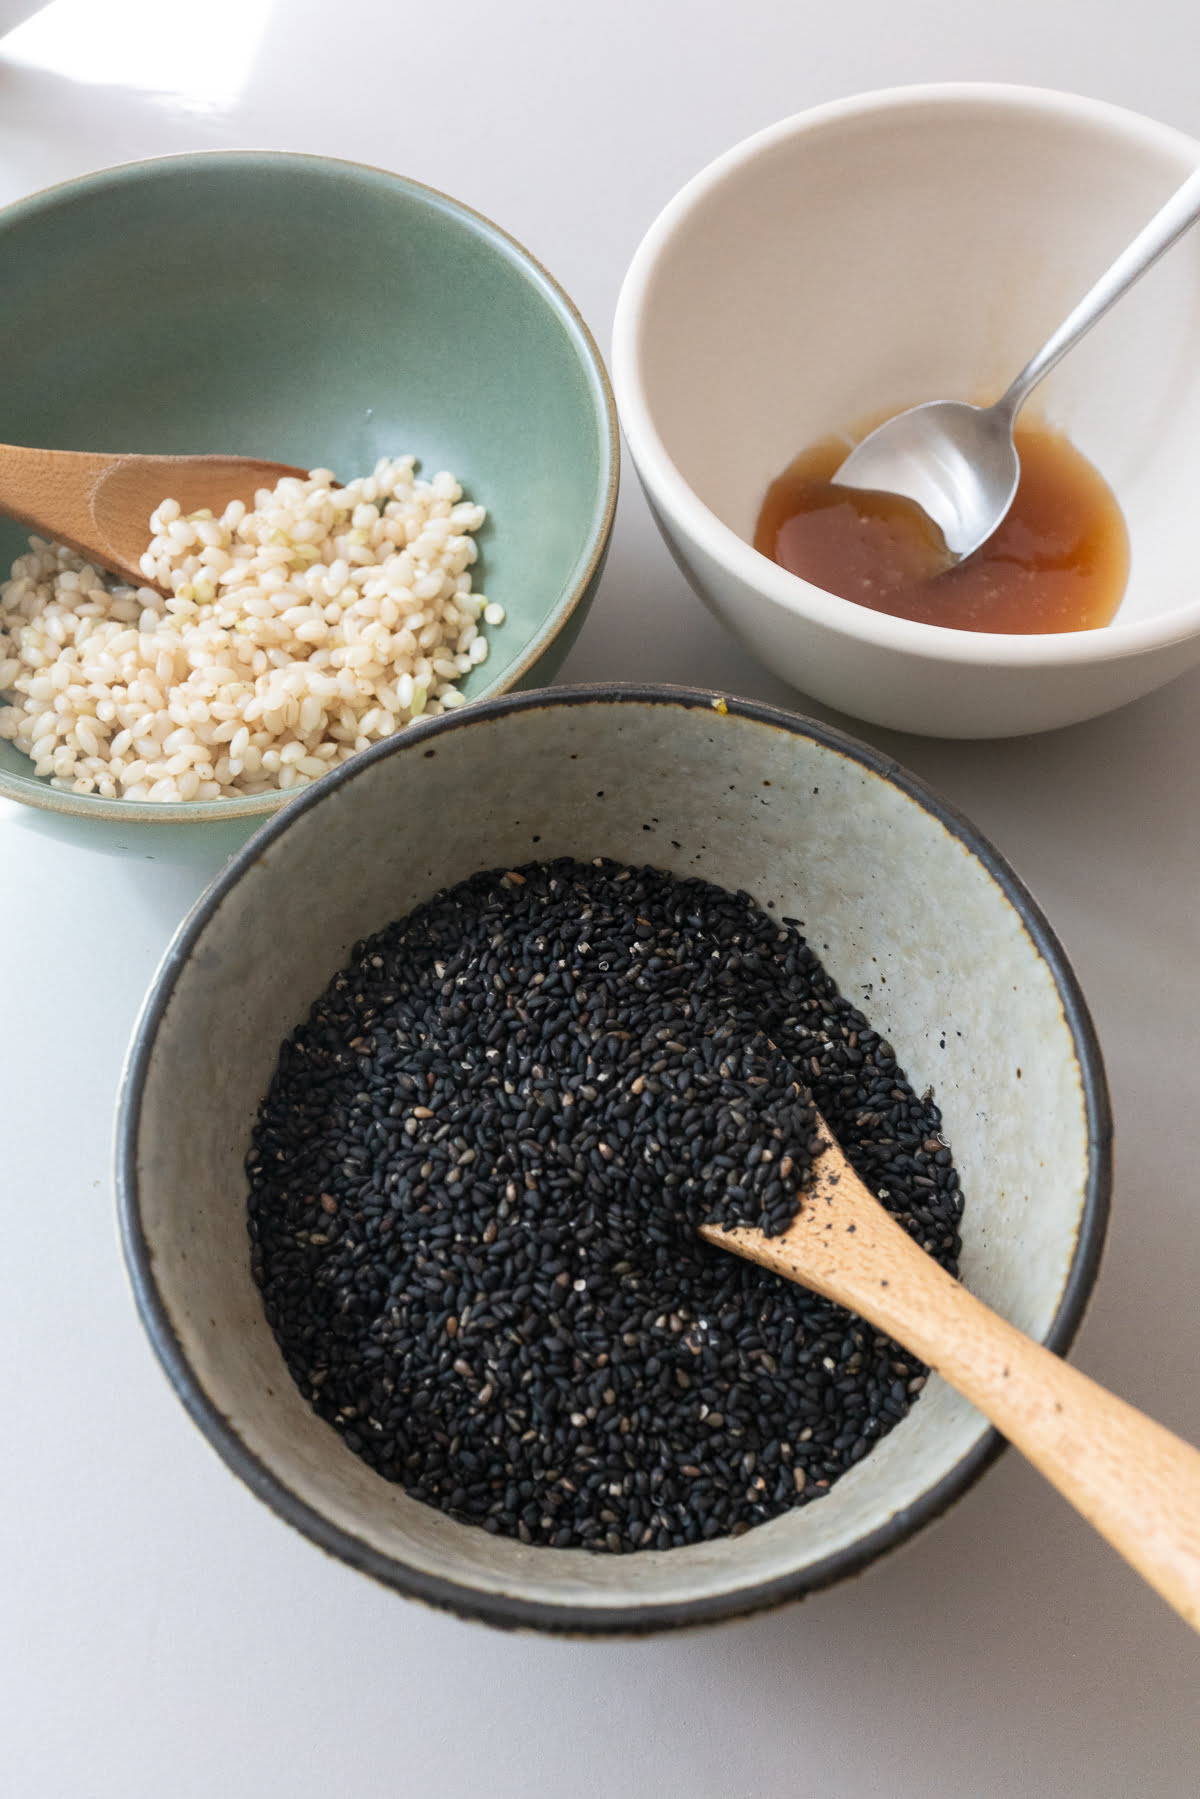 Ingredients for Black Sesame Soup (black sesame seeds, glutinous rice, and honey).